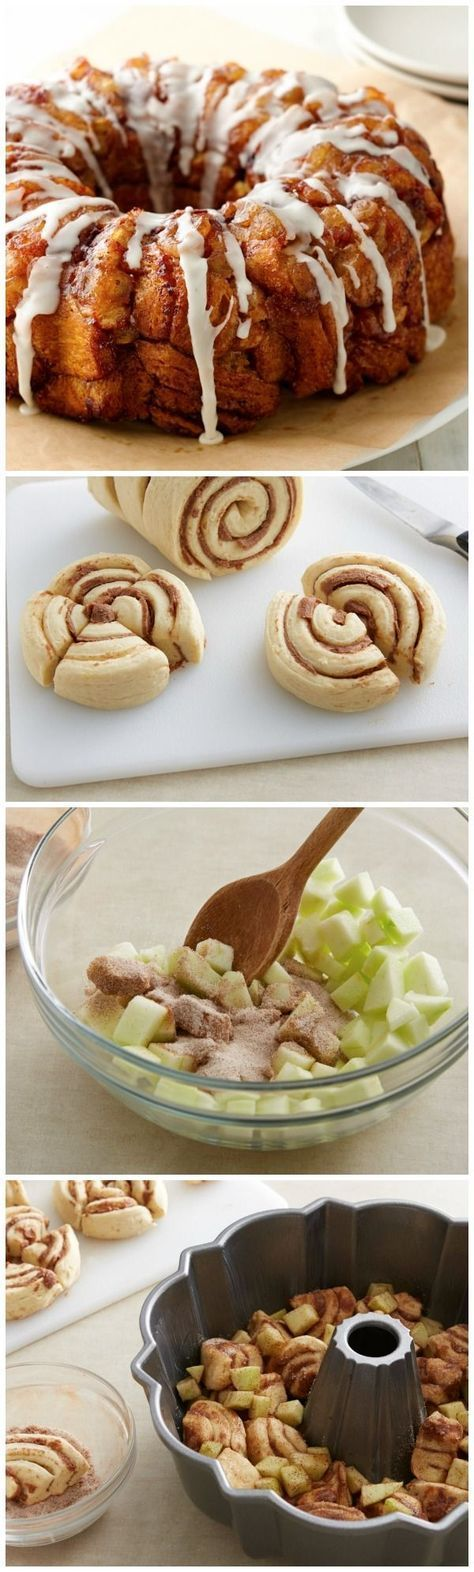 Going to go apple picking soon? Save them to make this Apple-Cinnamon Monkey Bread made with only 5 ingredients. Pillsbury cinnamon rolls, apple and cinnamon combine to make the perfect breakfast and brunch!